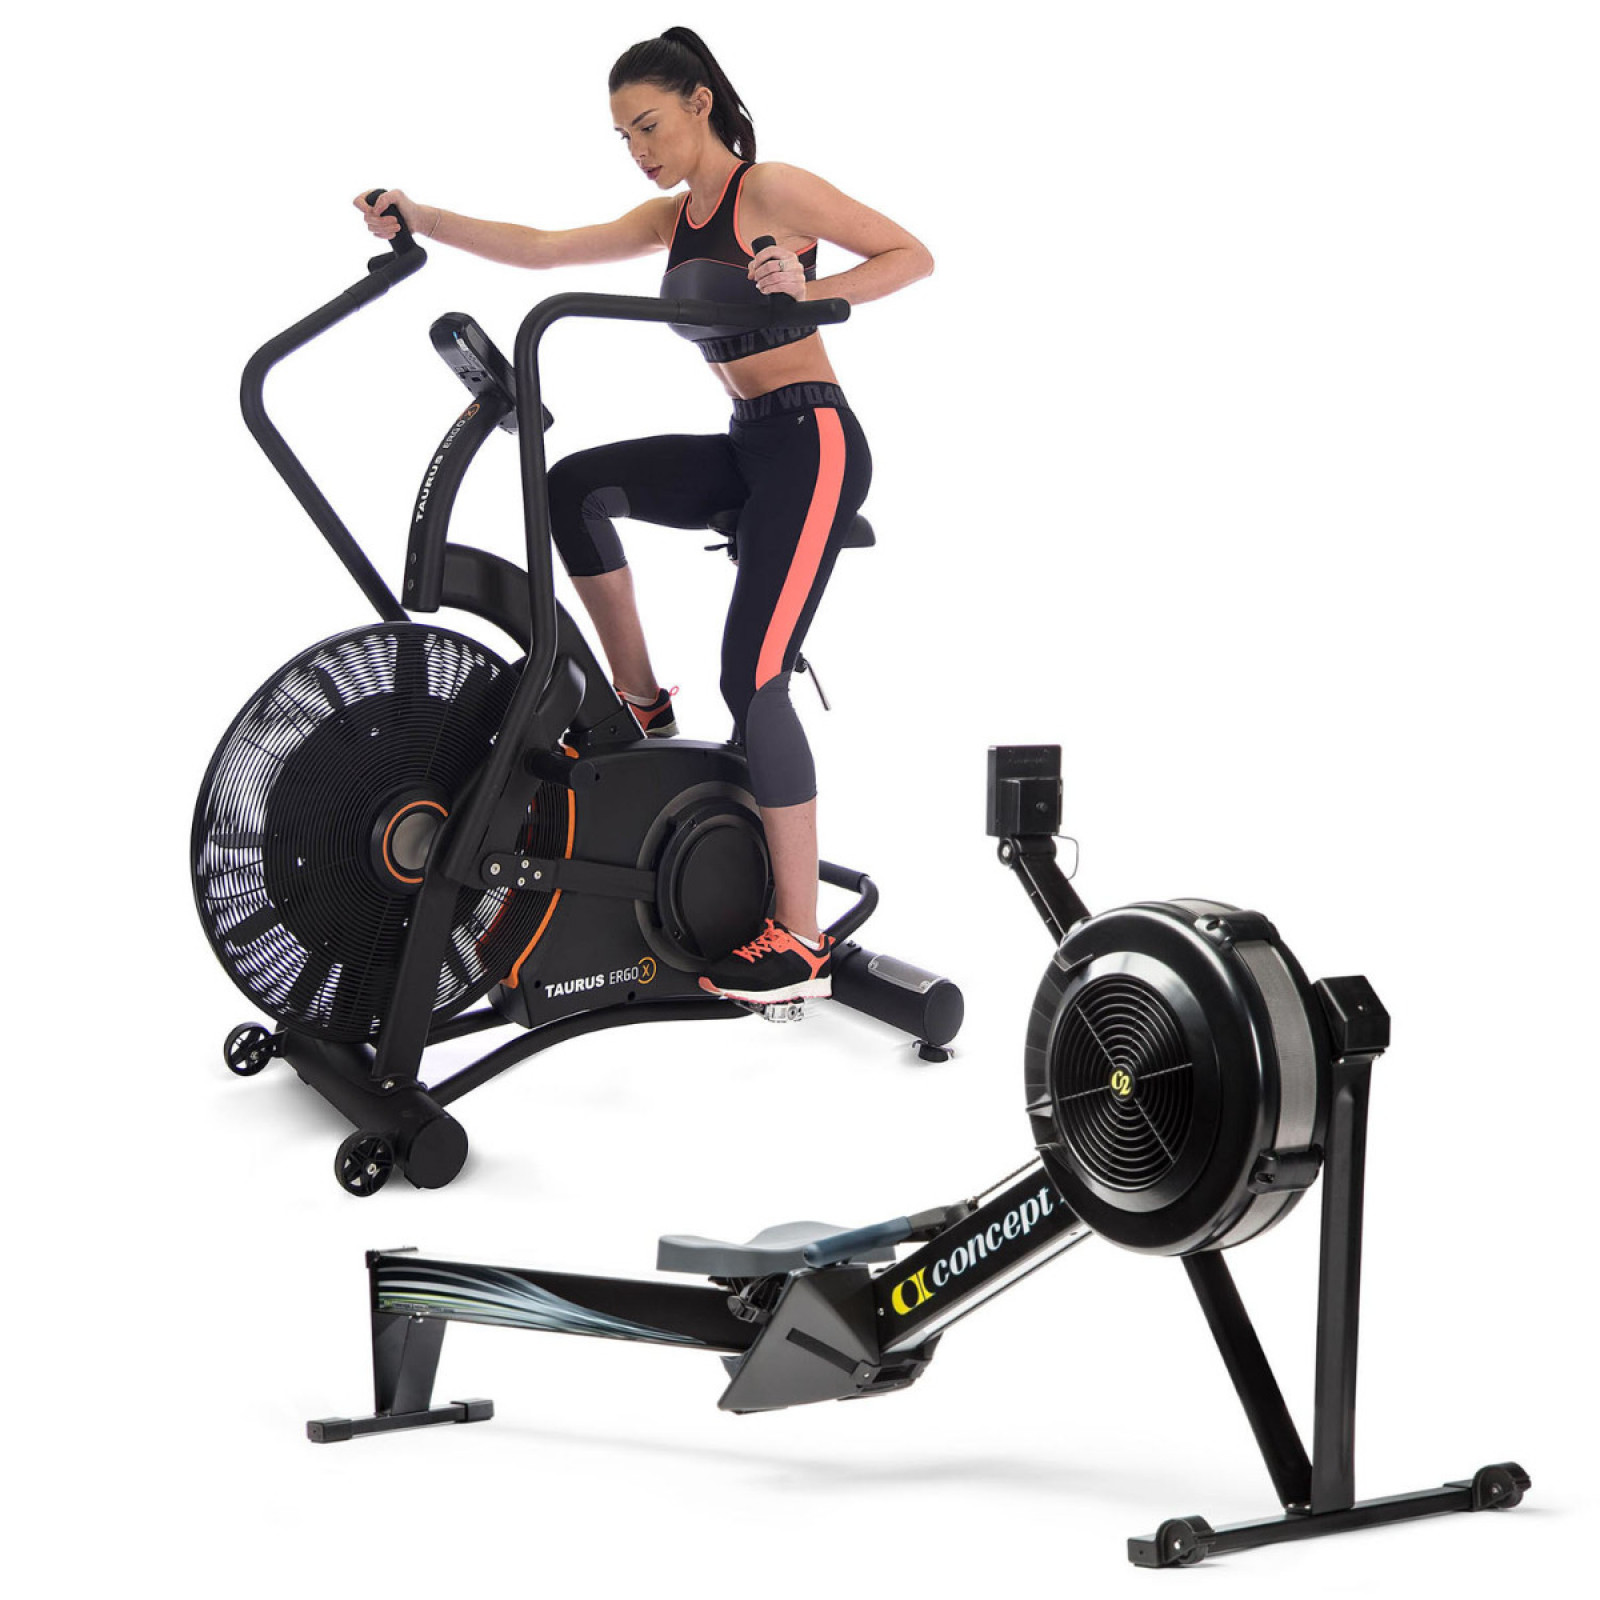 Concept 2 Model D >> Concept2 Model D Rowing Machine With Pm5 Monitor Taurus Air Bike Ergo X